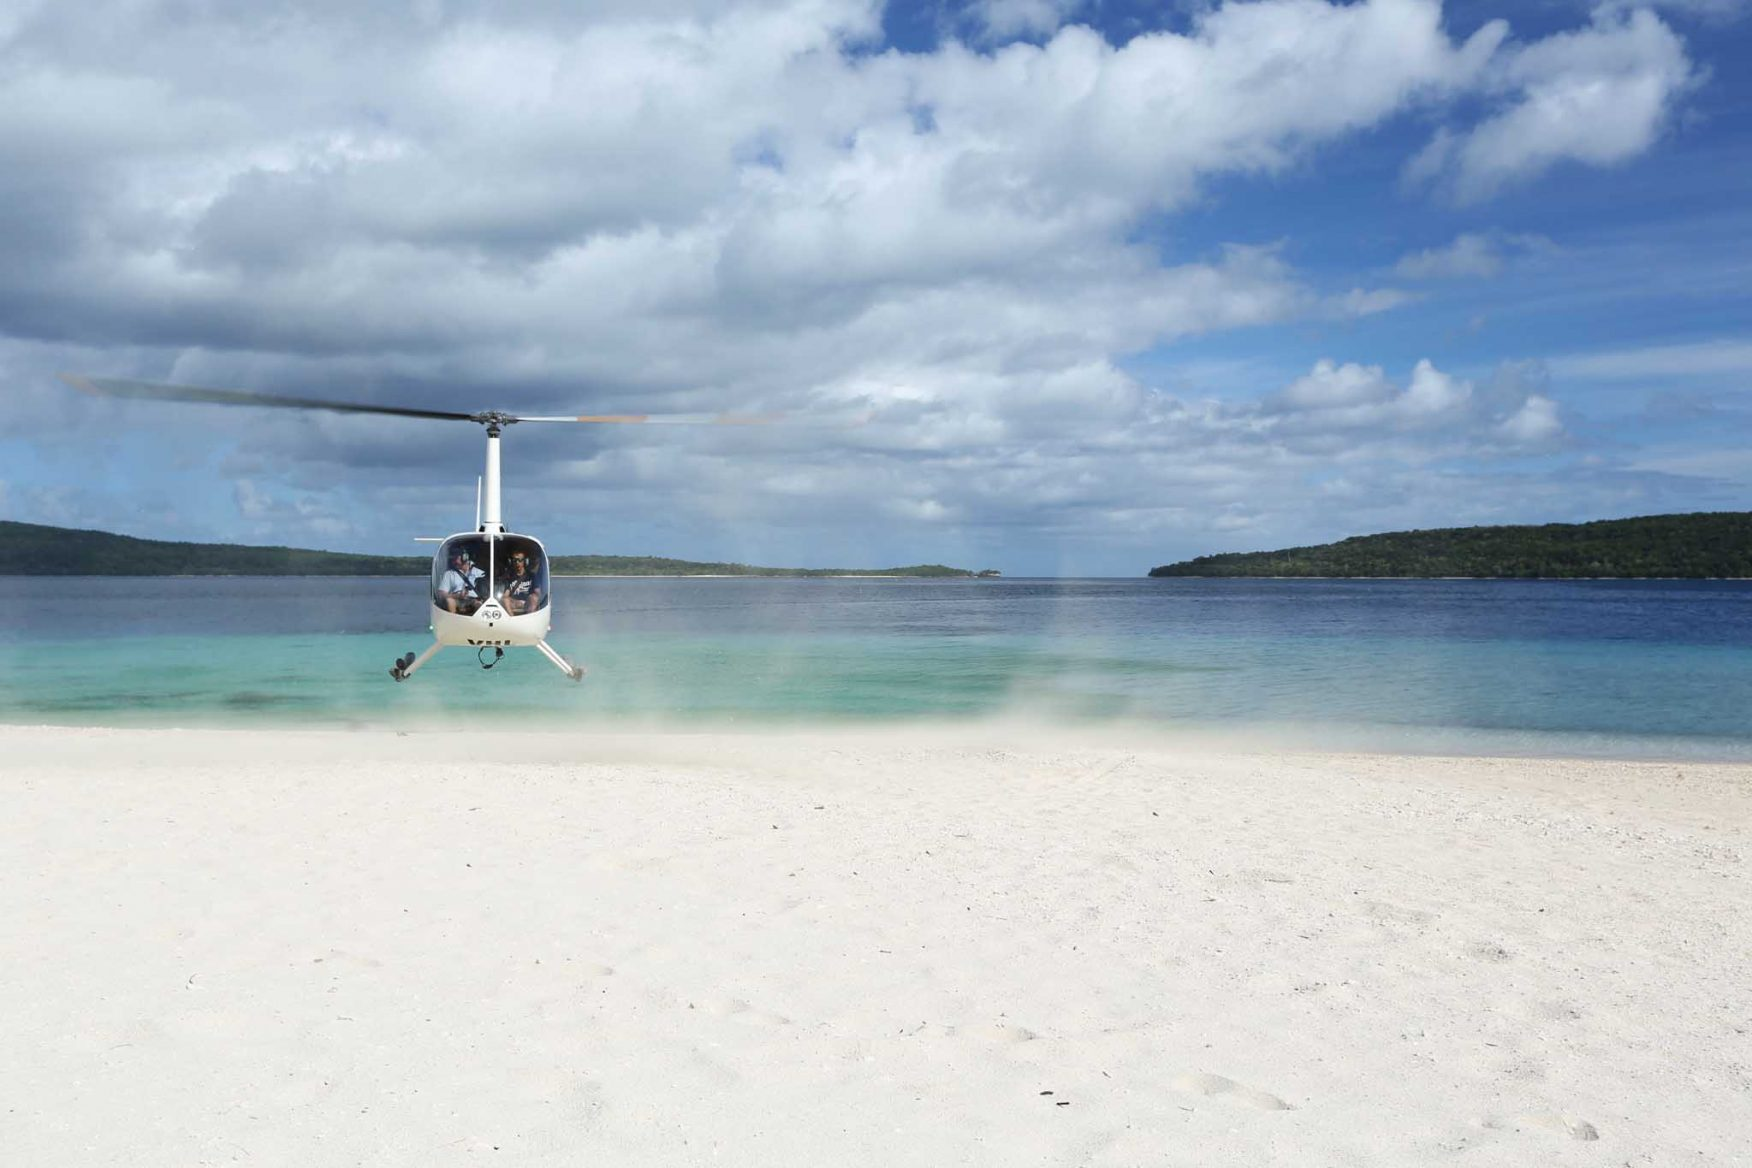 vanuatu-volcano-expedition-whitesand-helicopter